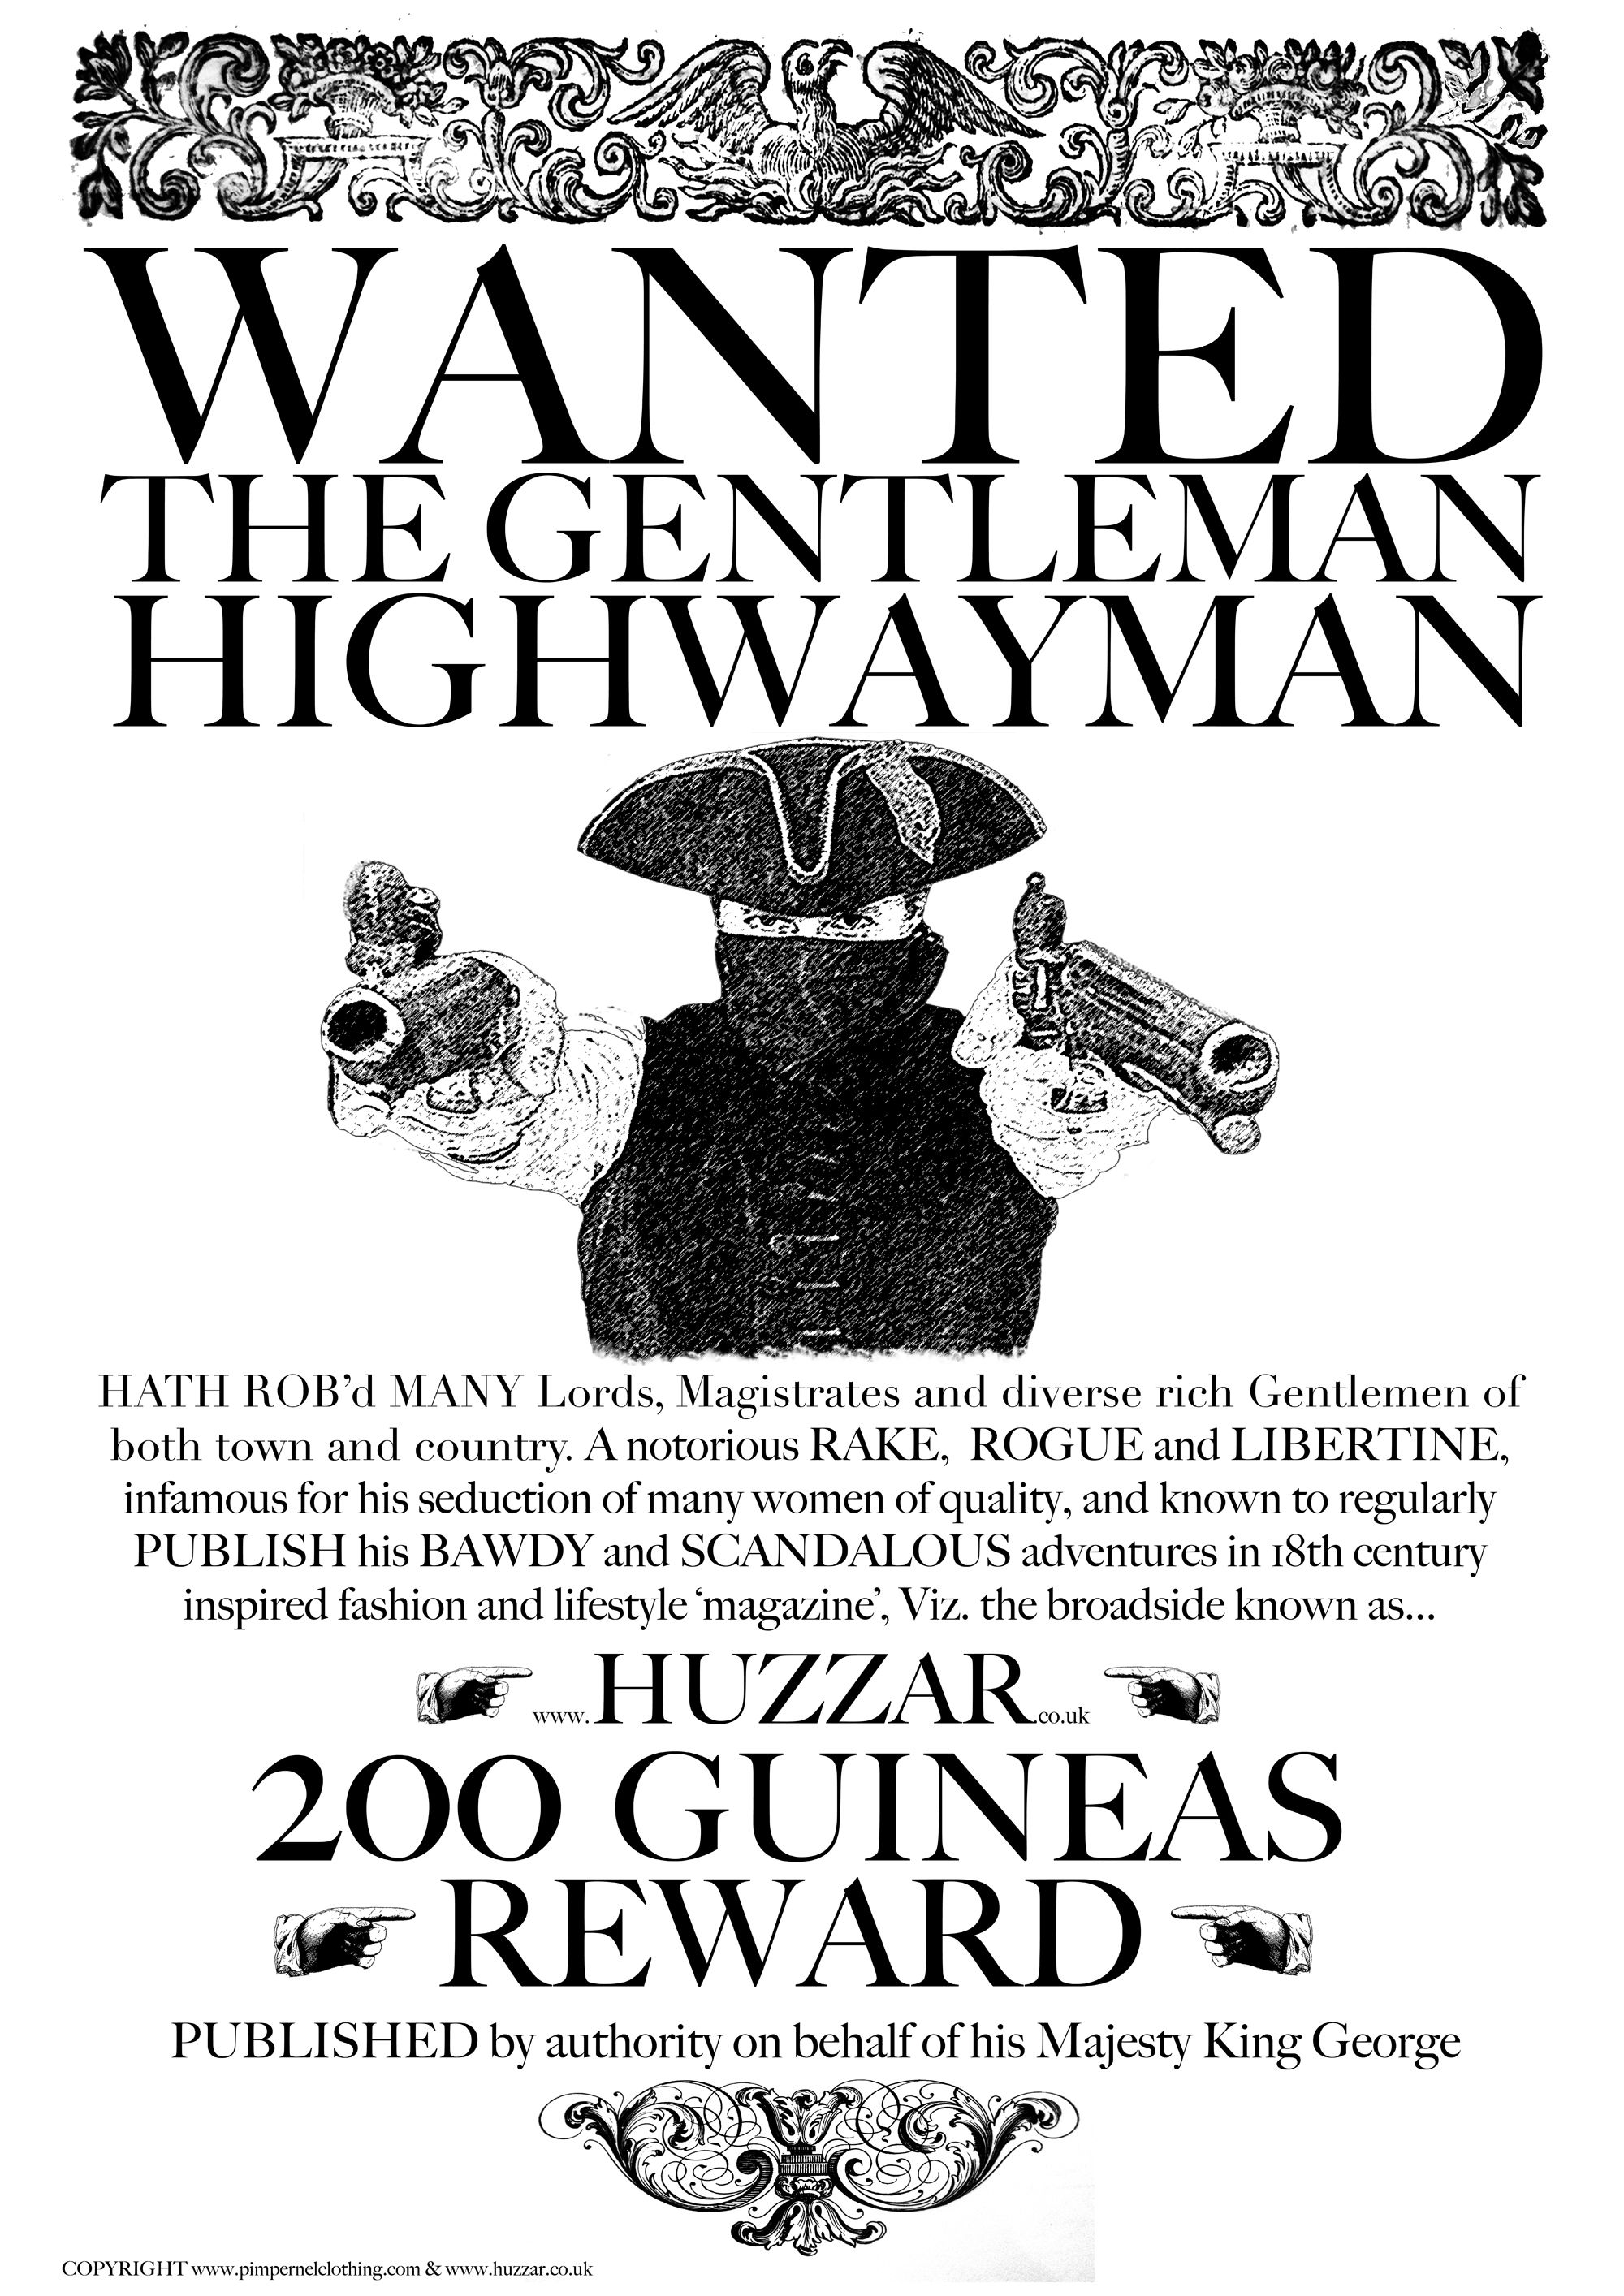 this is a great entry on th century inspired fashion lifestyle this is a great entry on century inspired fashion lifestyle website huzzar the rakish highwayman wanted poster huzzar co uk